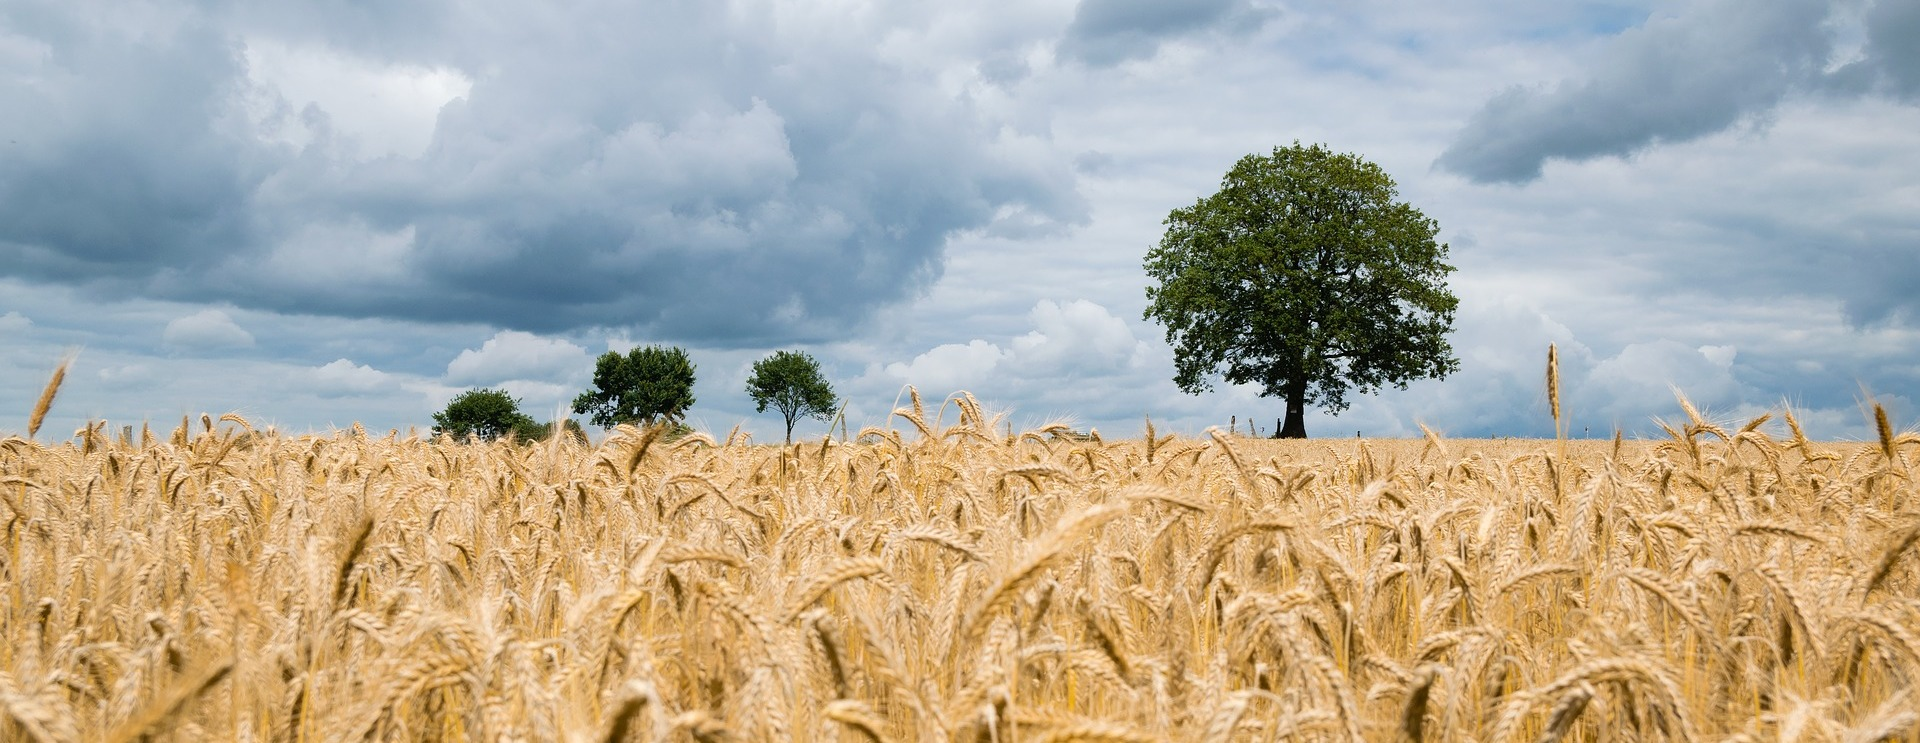 Russia exports 39% more barley in 2020